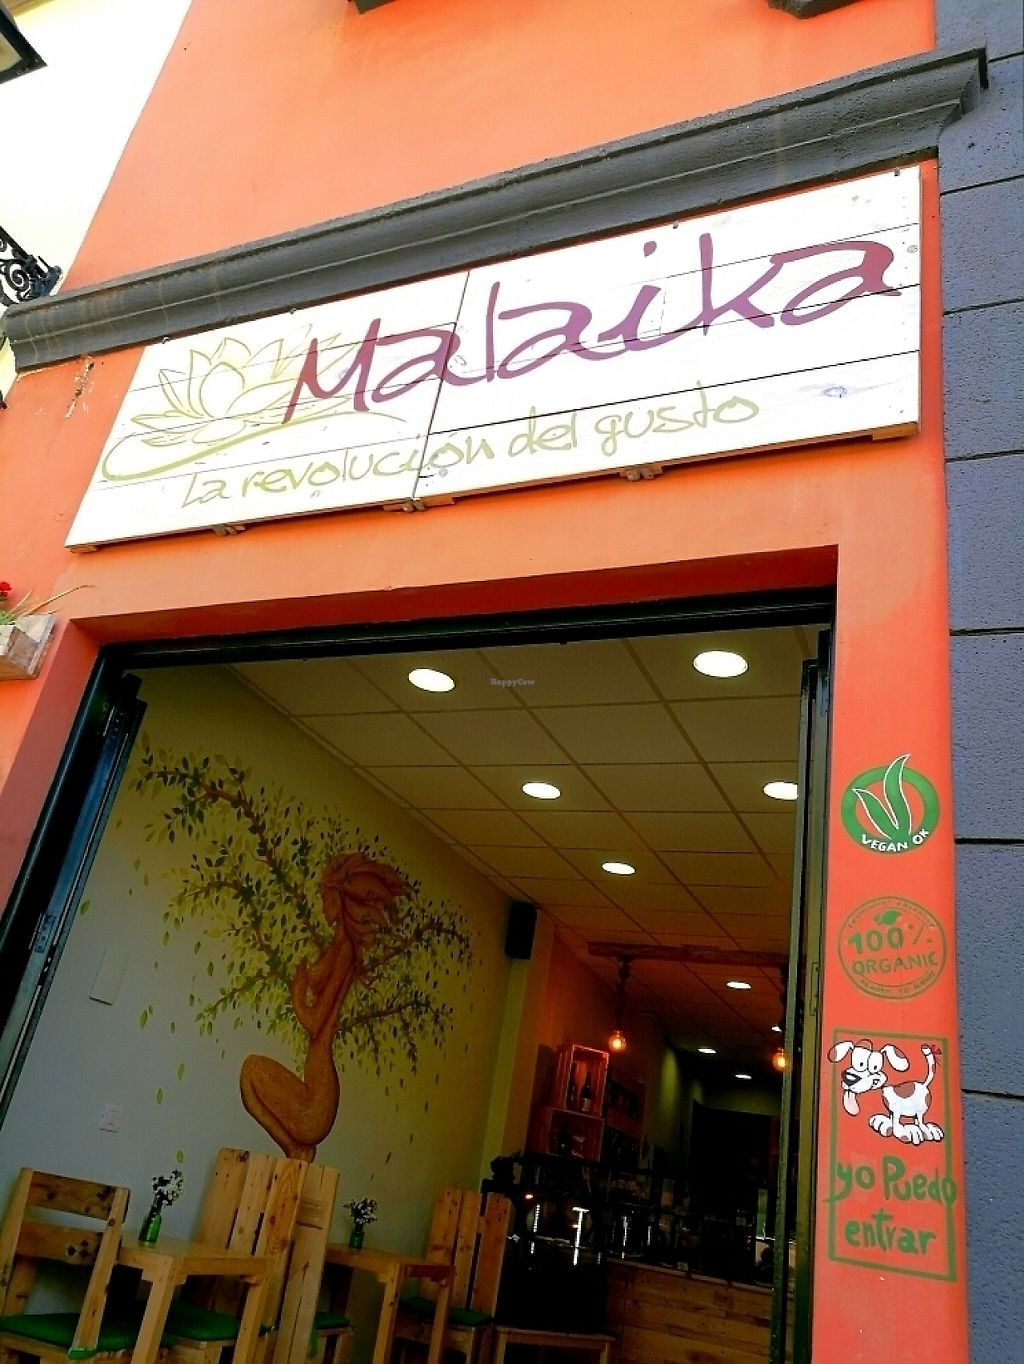 """Photo of Malaika  by <a href=""""/members/profile/mrmaxbailey"""">mrmaxbailey</a> <br/>Great place!  <br/> May 11, 2017  - <a href='/contact/abuse/image/81056/257931'>Report</a>"""